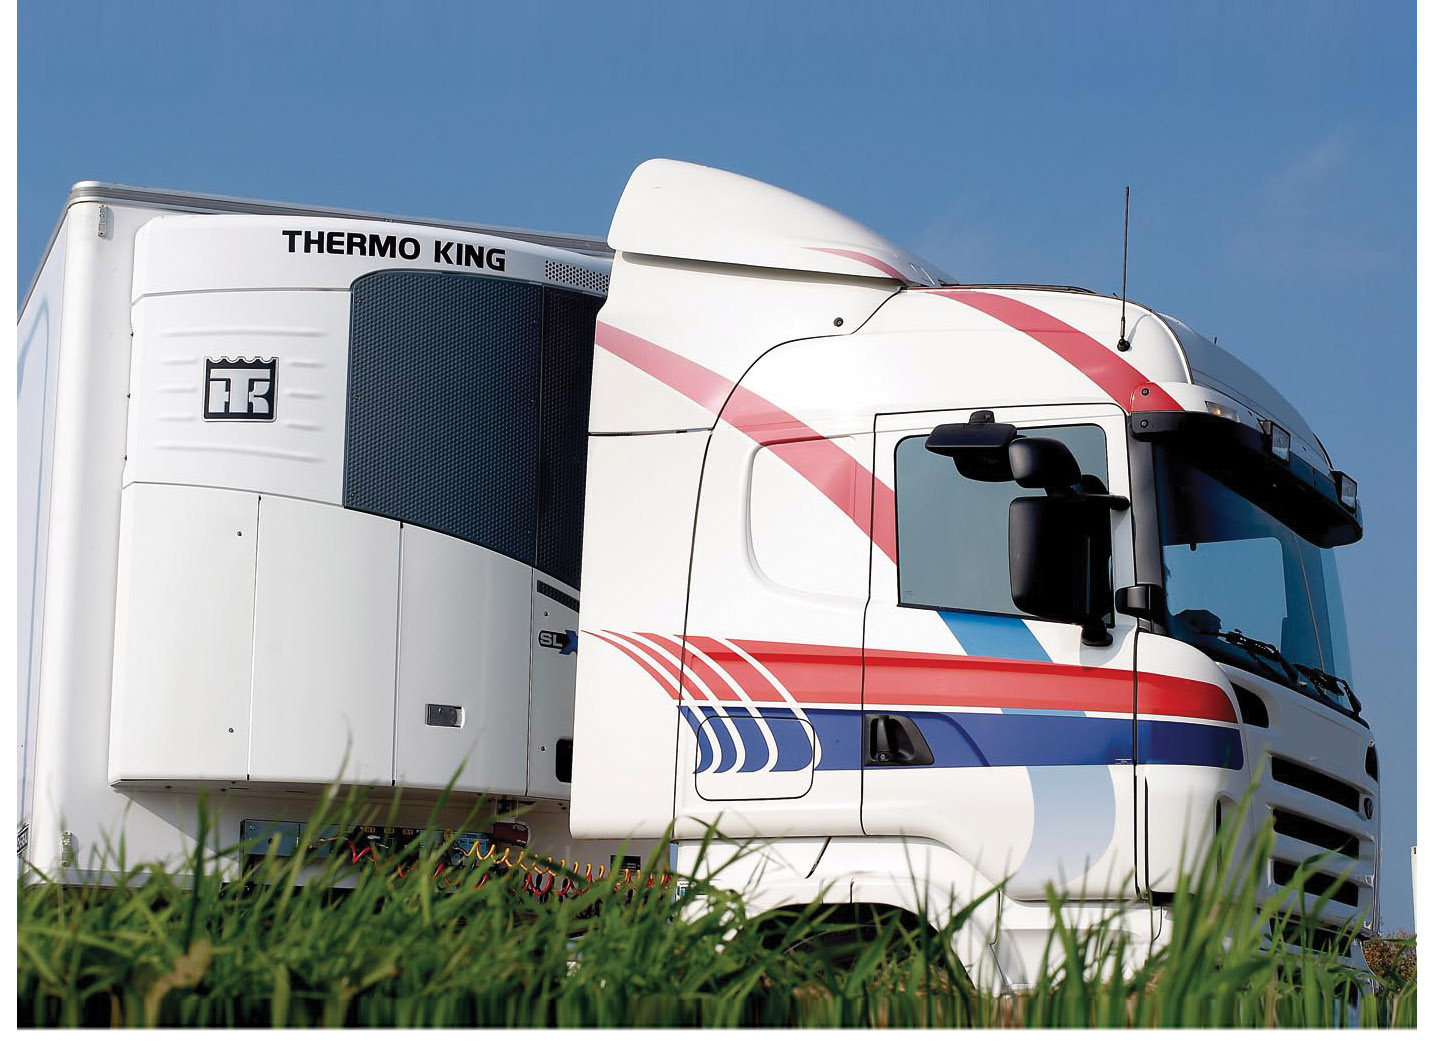 Refrigerated Transport Services image for MTK HOME page